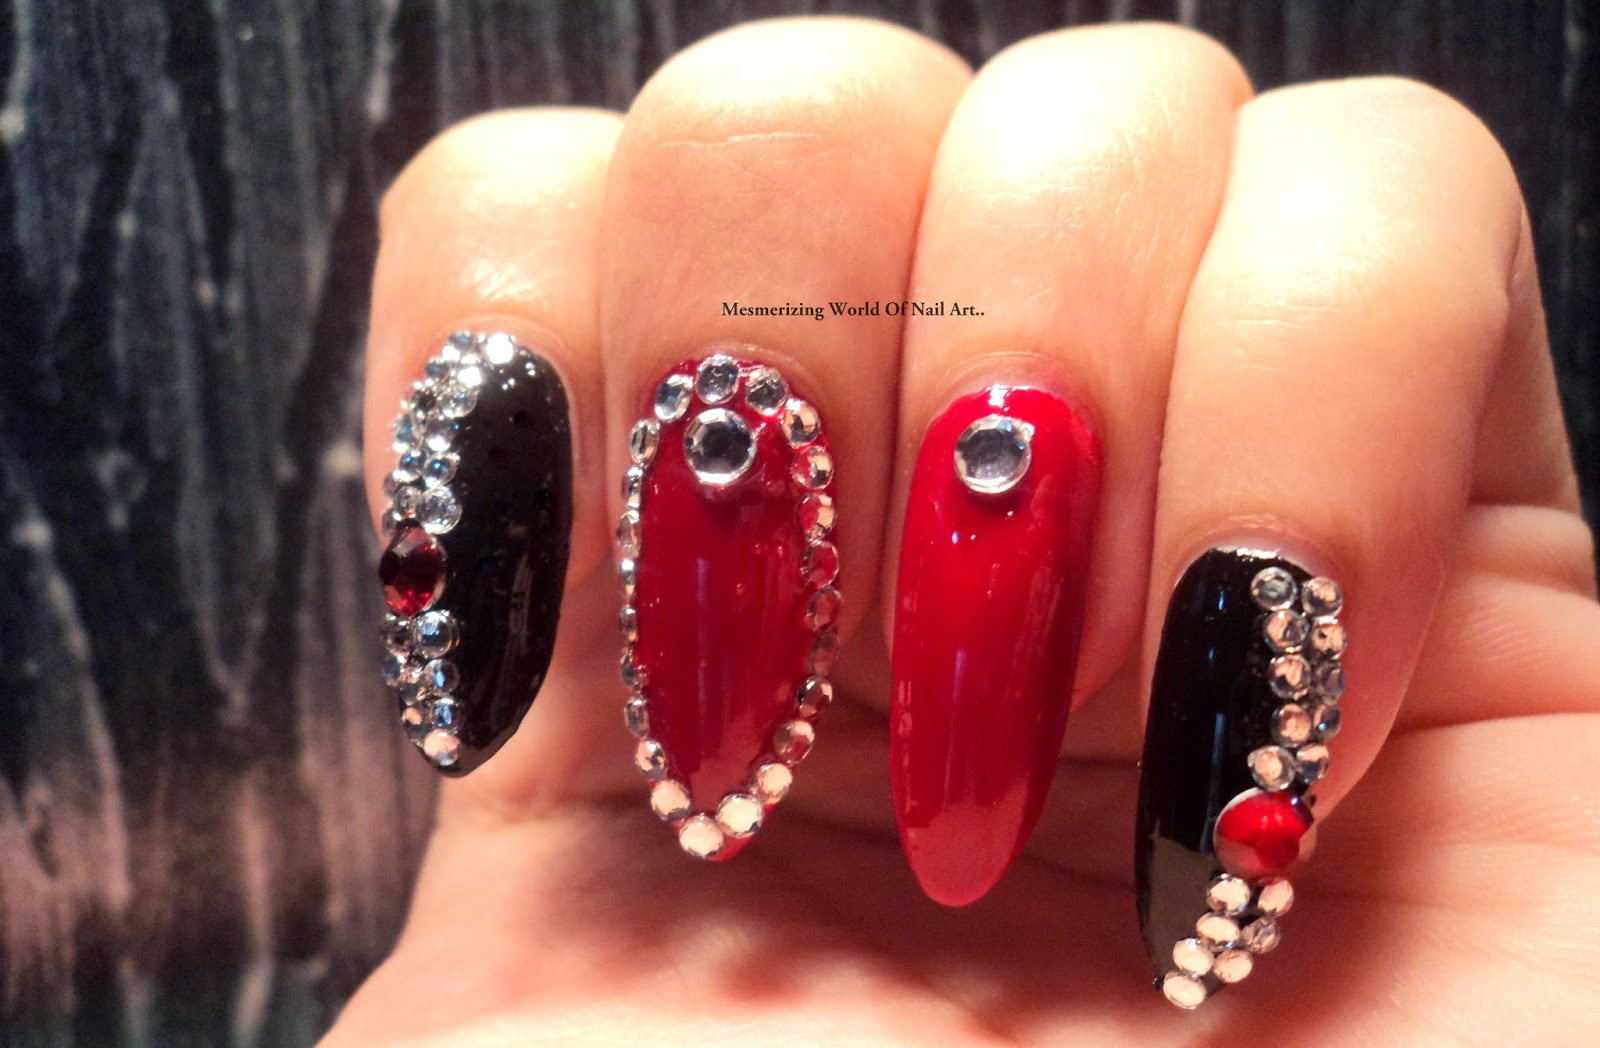 Mesmerizing World Of Nail Art...: Red and Black Bling Stiletto Nails